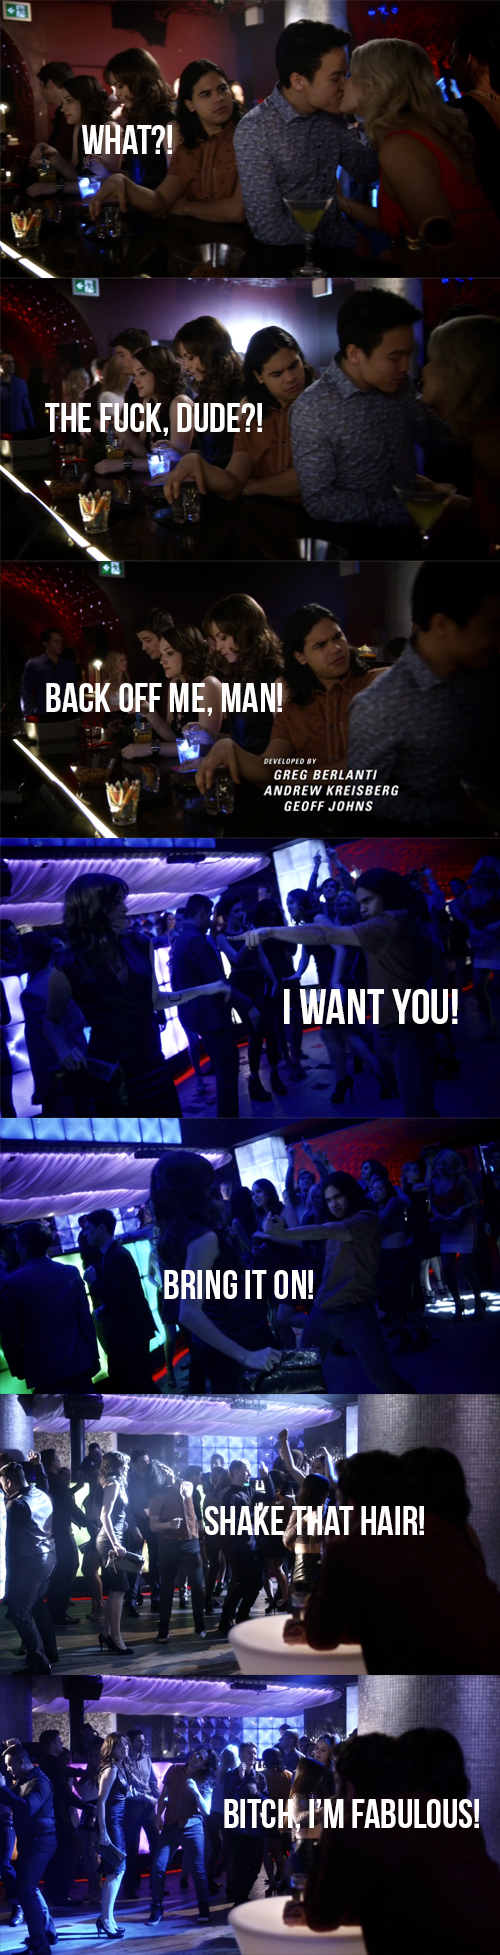 Can we take a moment to appreciate Cisco drunk at the club?! He was fabulous! I wanna hang out with him!  Unless he's not the real Cisco, but Jay Garrick... who knows!